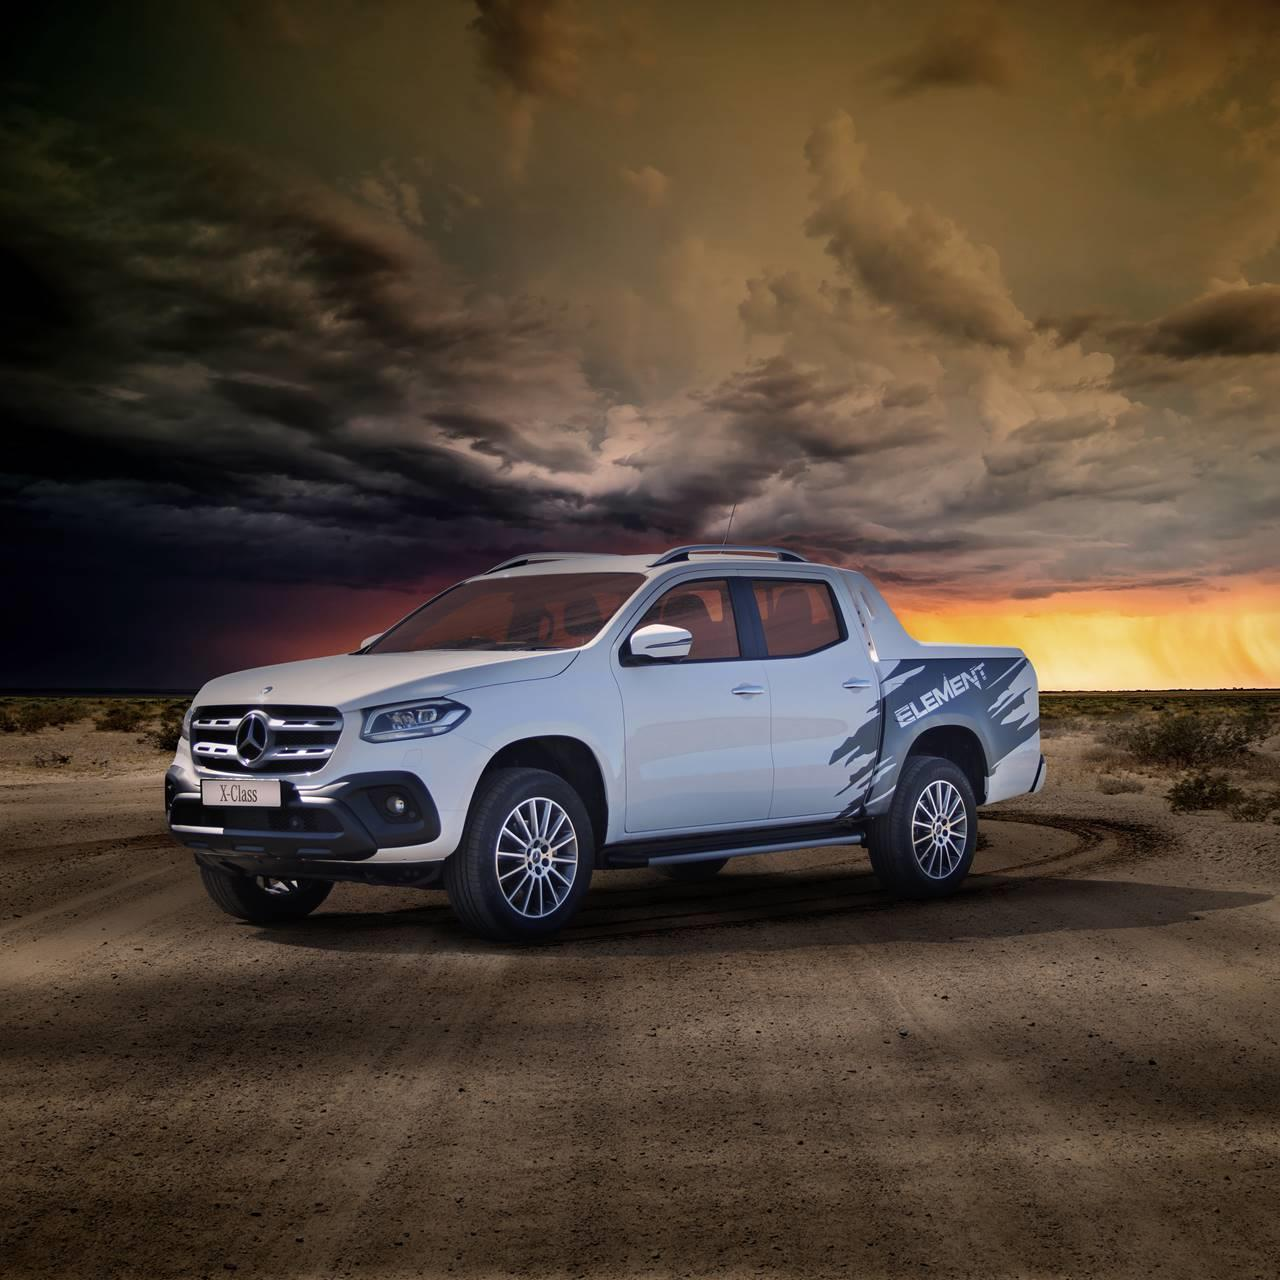 2019 MercedesBenz XClass ELEMENT Desert Wallpaper And